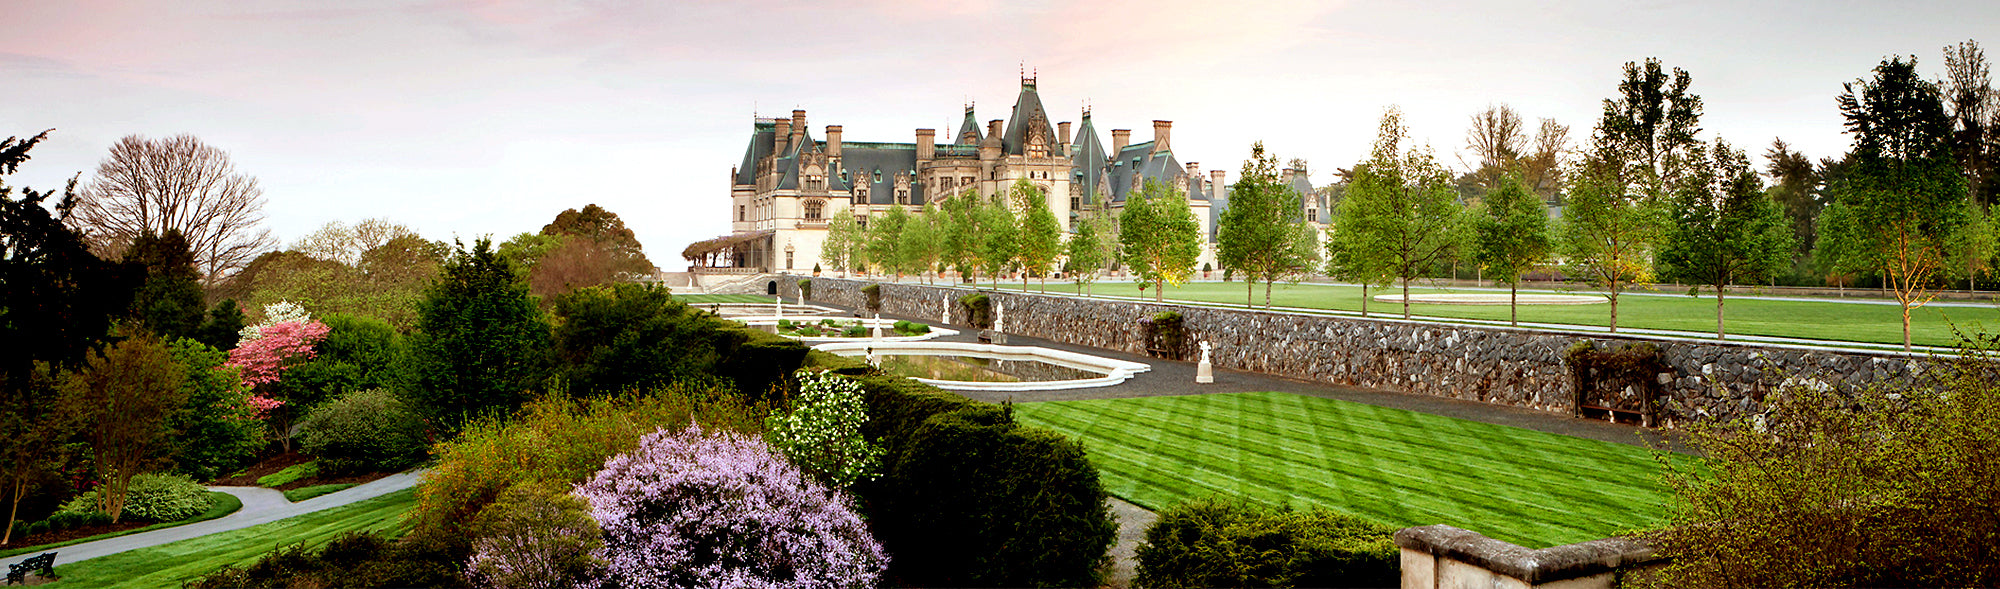 9 Fairy-Tale Castles to Visit in the US